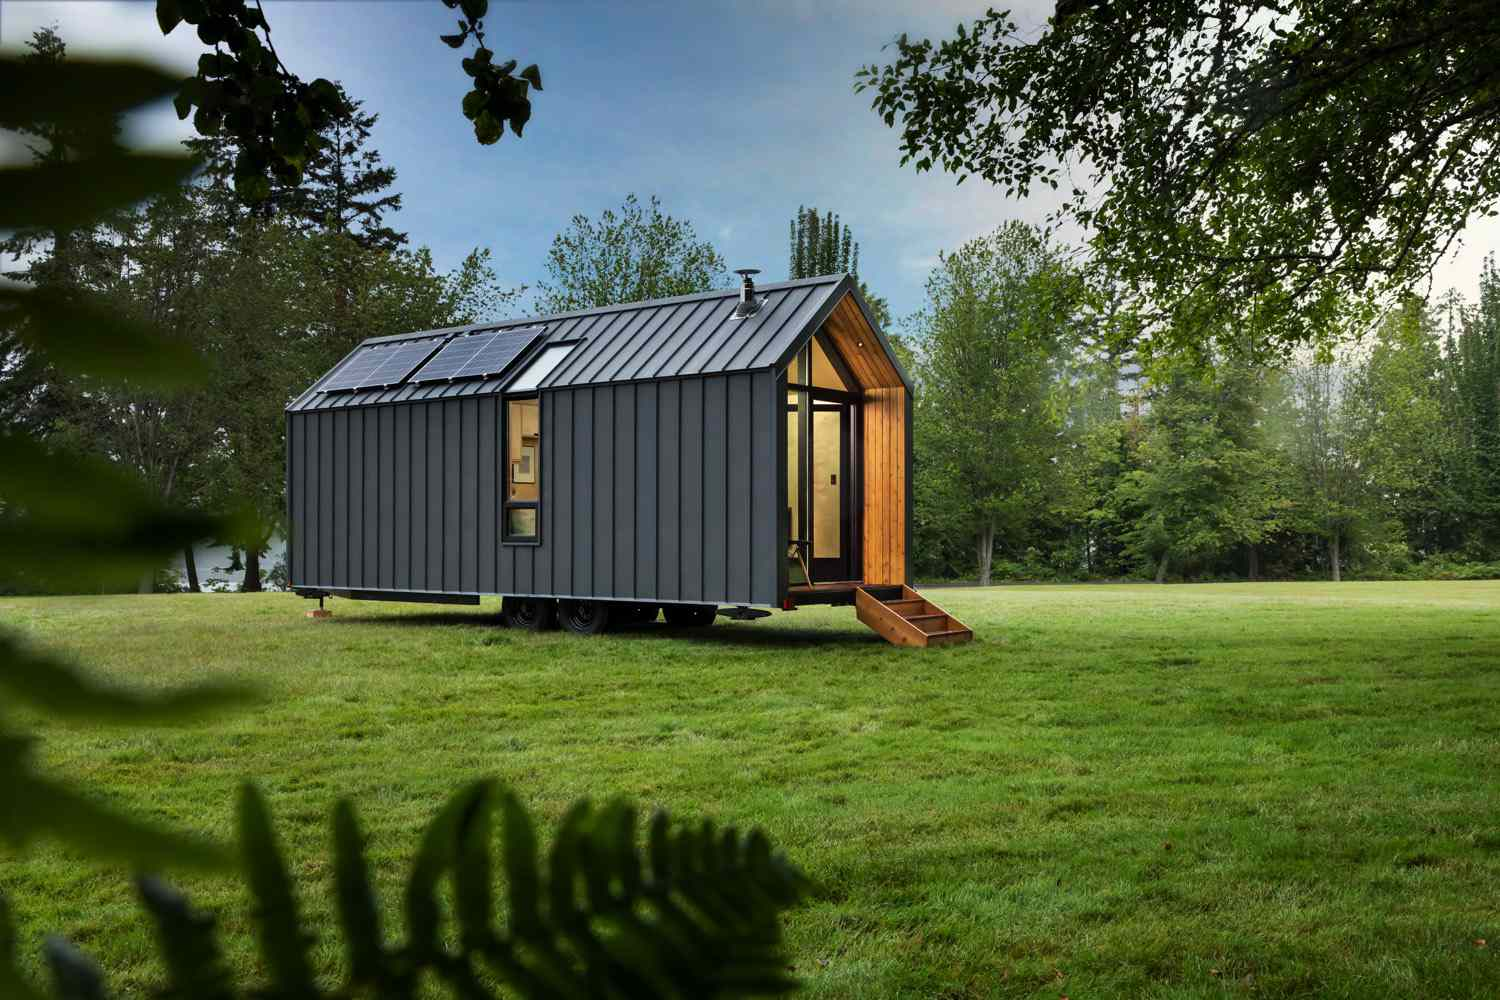 Modern shed on grass